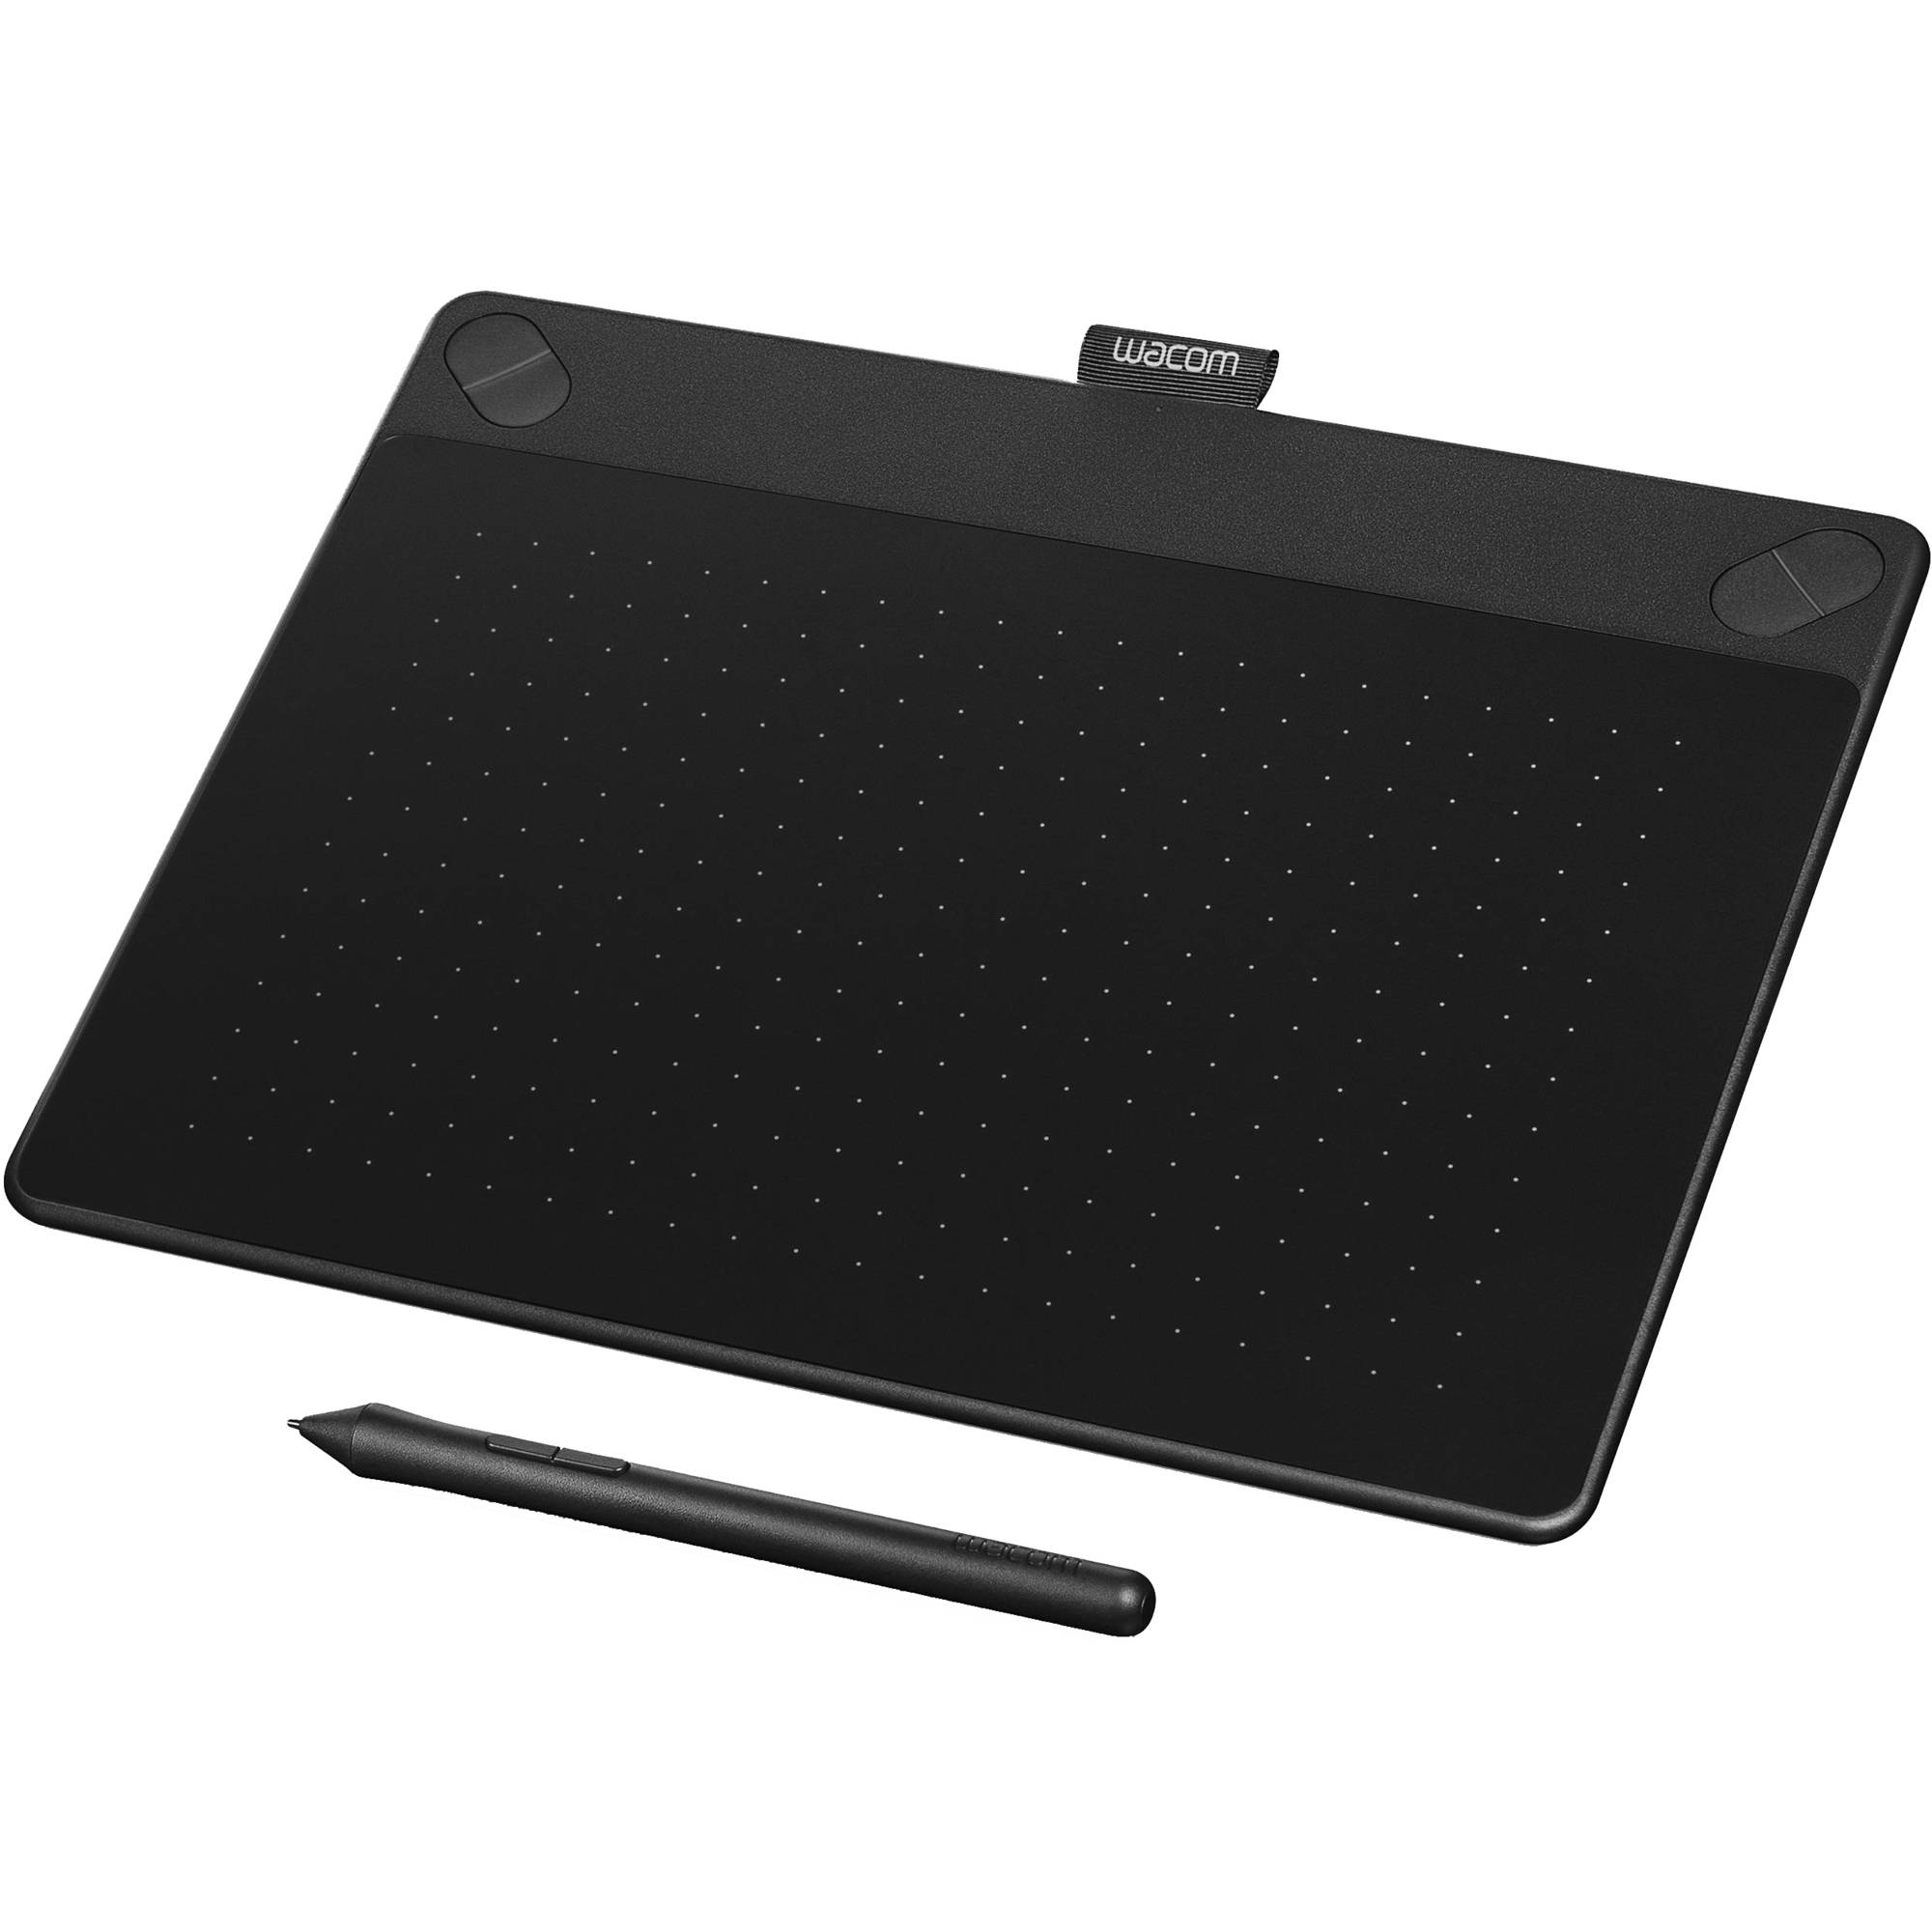 Wacom Intuos 3D Pen and Touch CTH690TK Black by Wacom